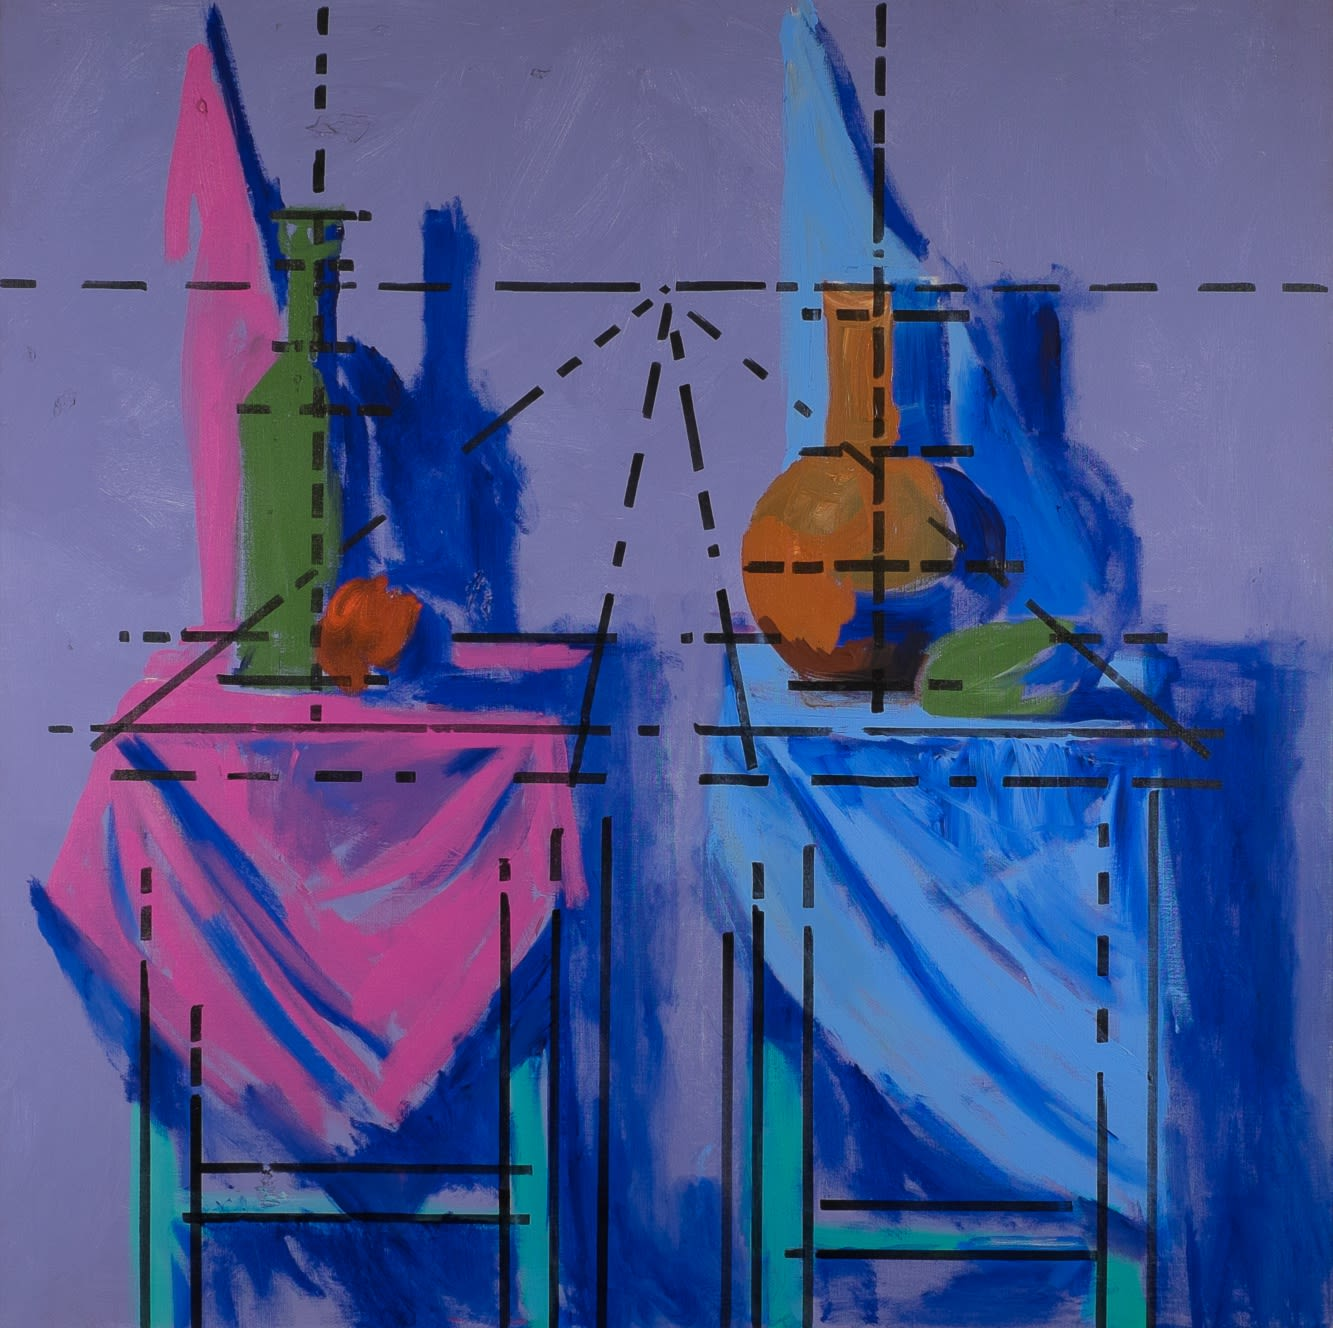 Komar (b. 1943) and Melamid (b. 1945) Yalta 1945 1986-1987 Mixed media 121.92 x 121.92 cm On loan to Ben Uri Collection © Vitaly Komar and Alexander Melamid To see and discover more about these artists click here